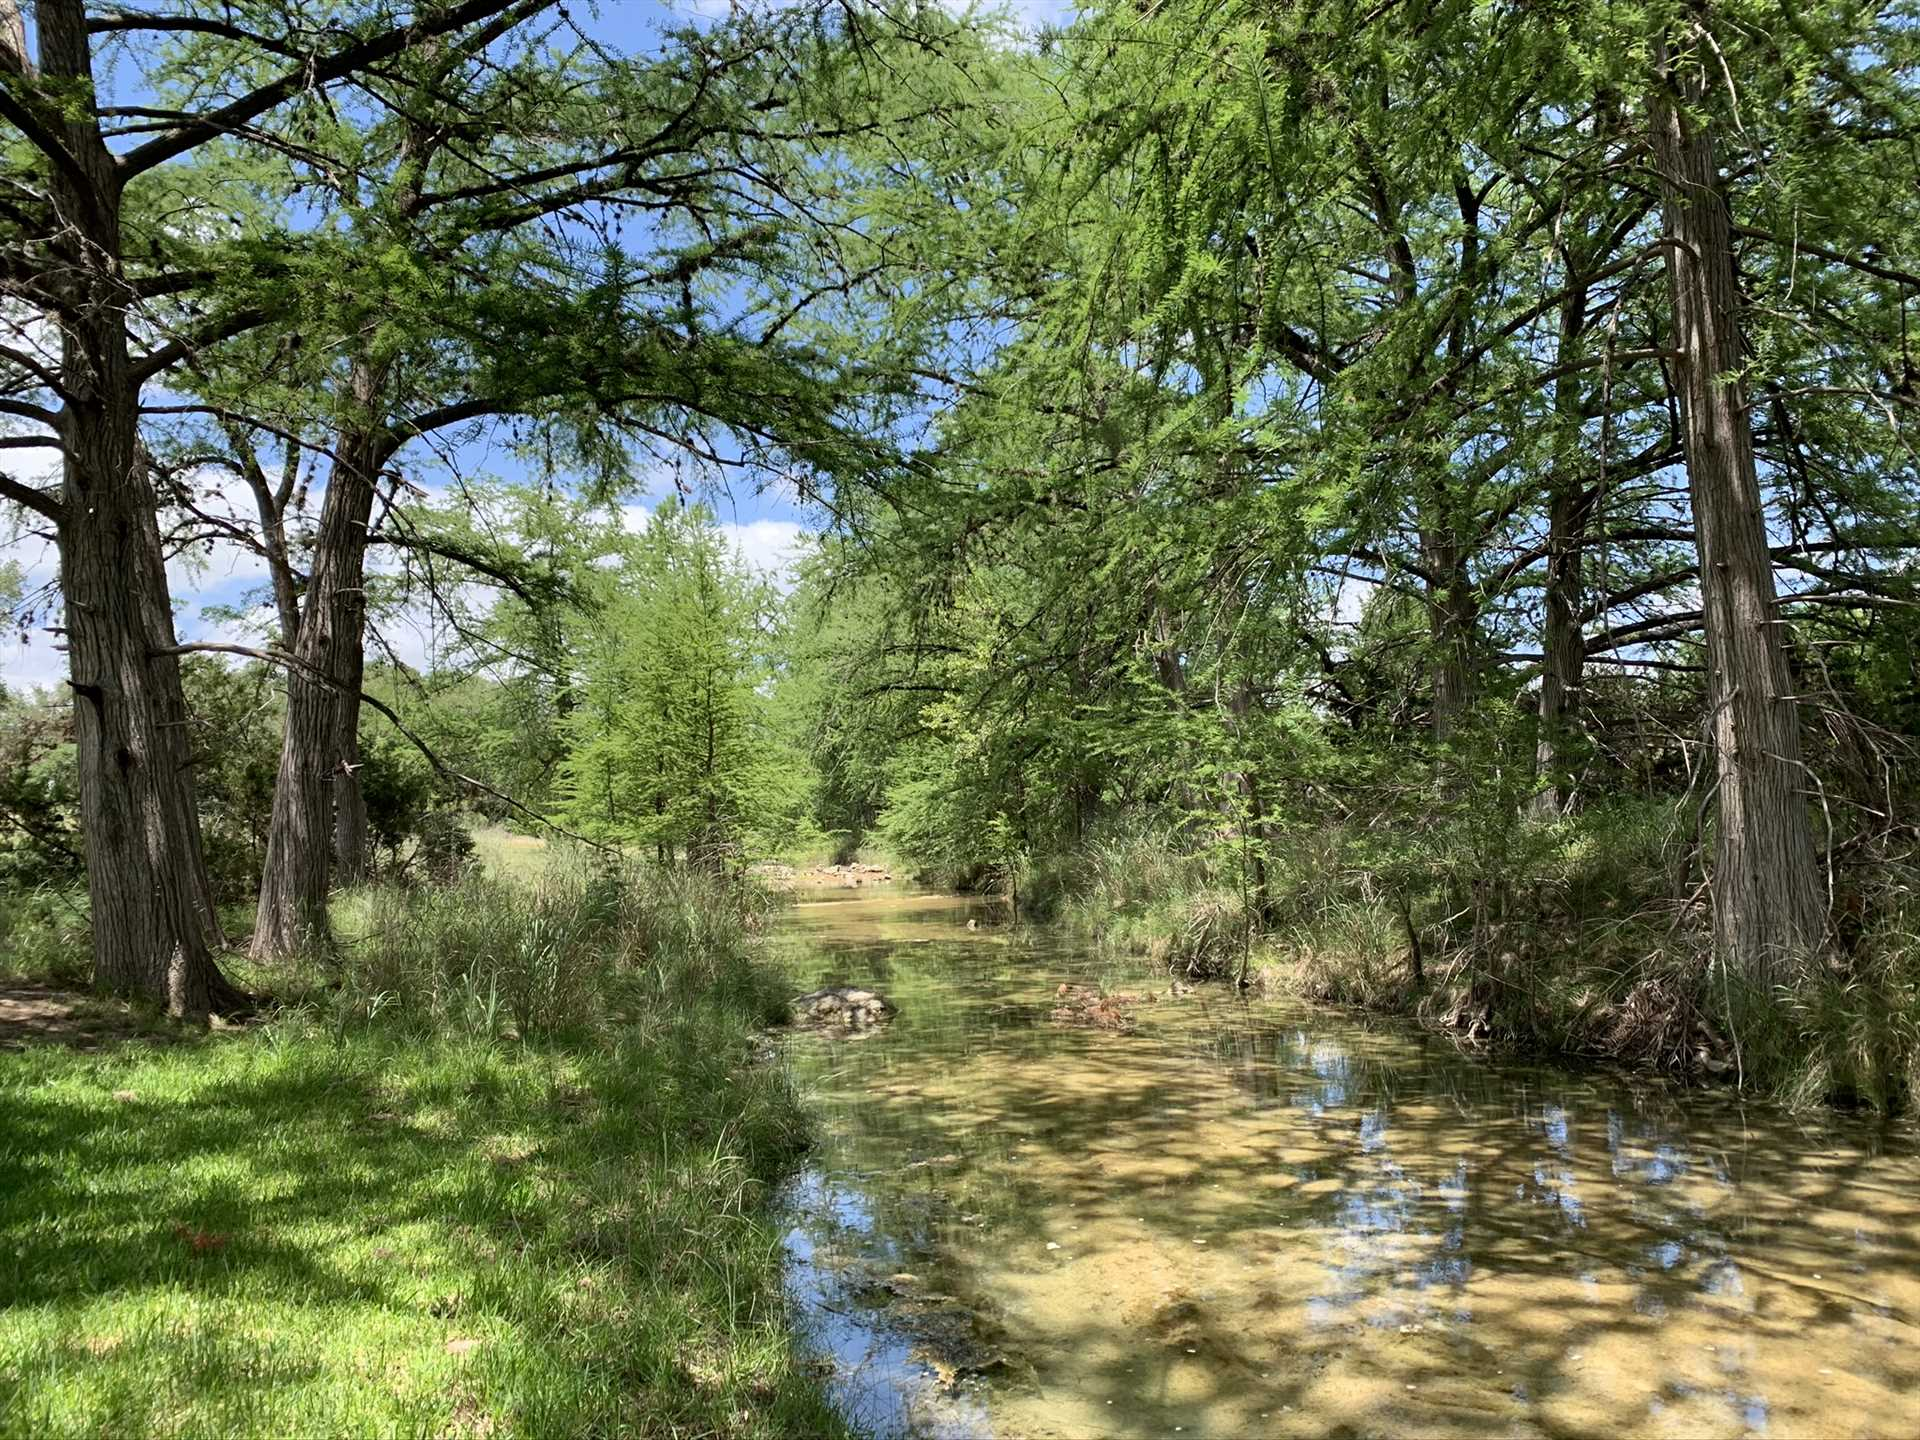 Nearby Bandera Creek's water levels vary with the seasons, but it always presents a restful and peaceful setting.